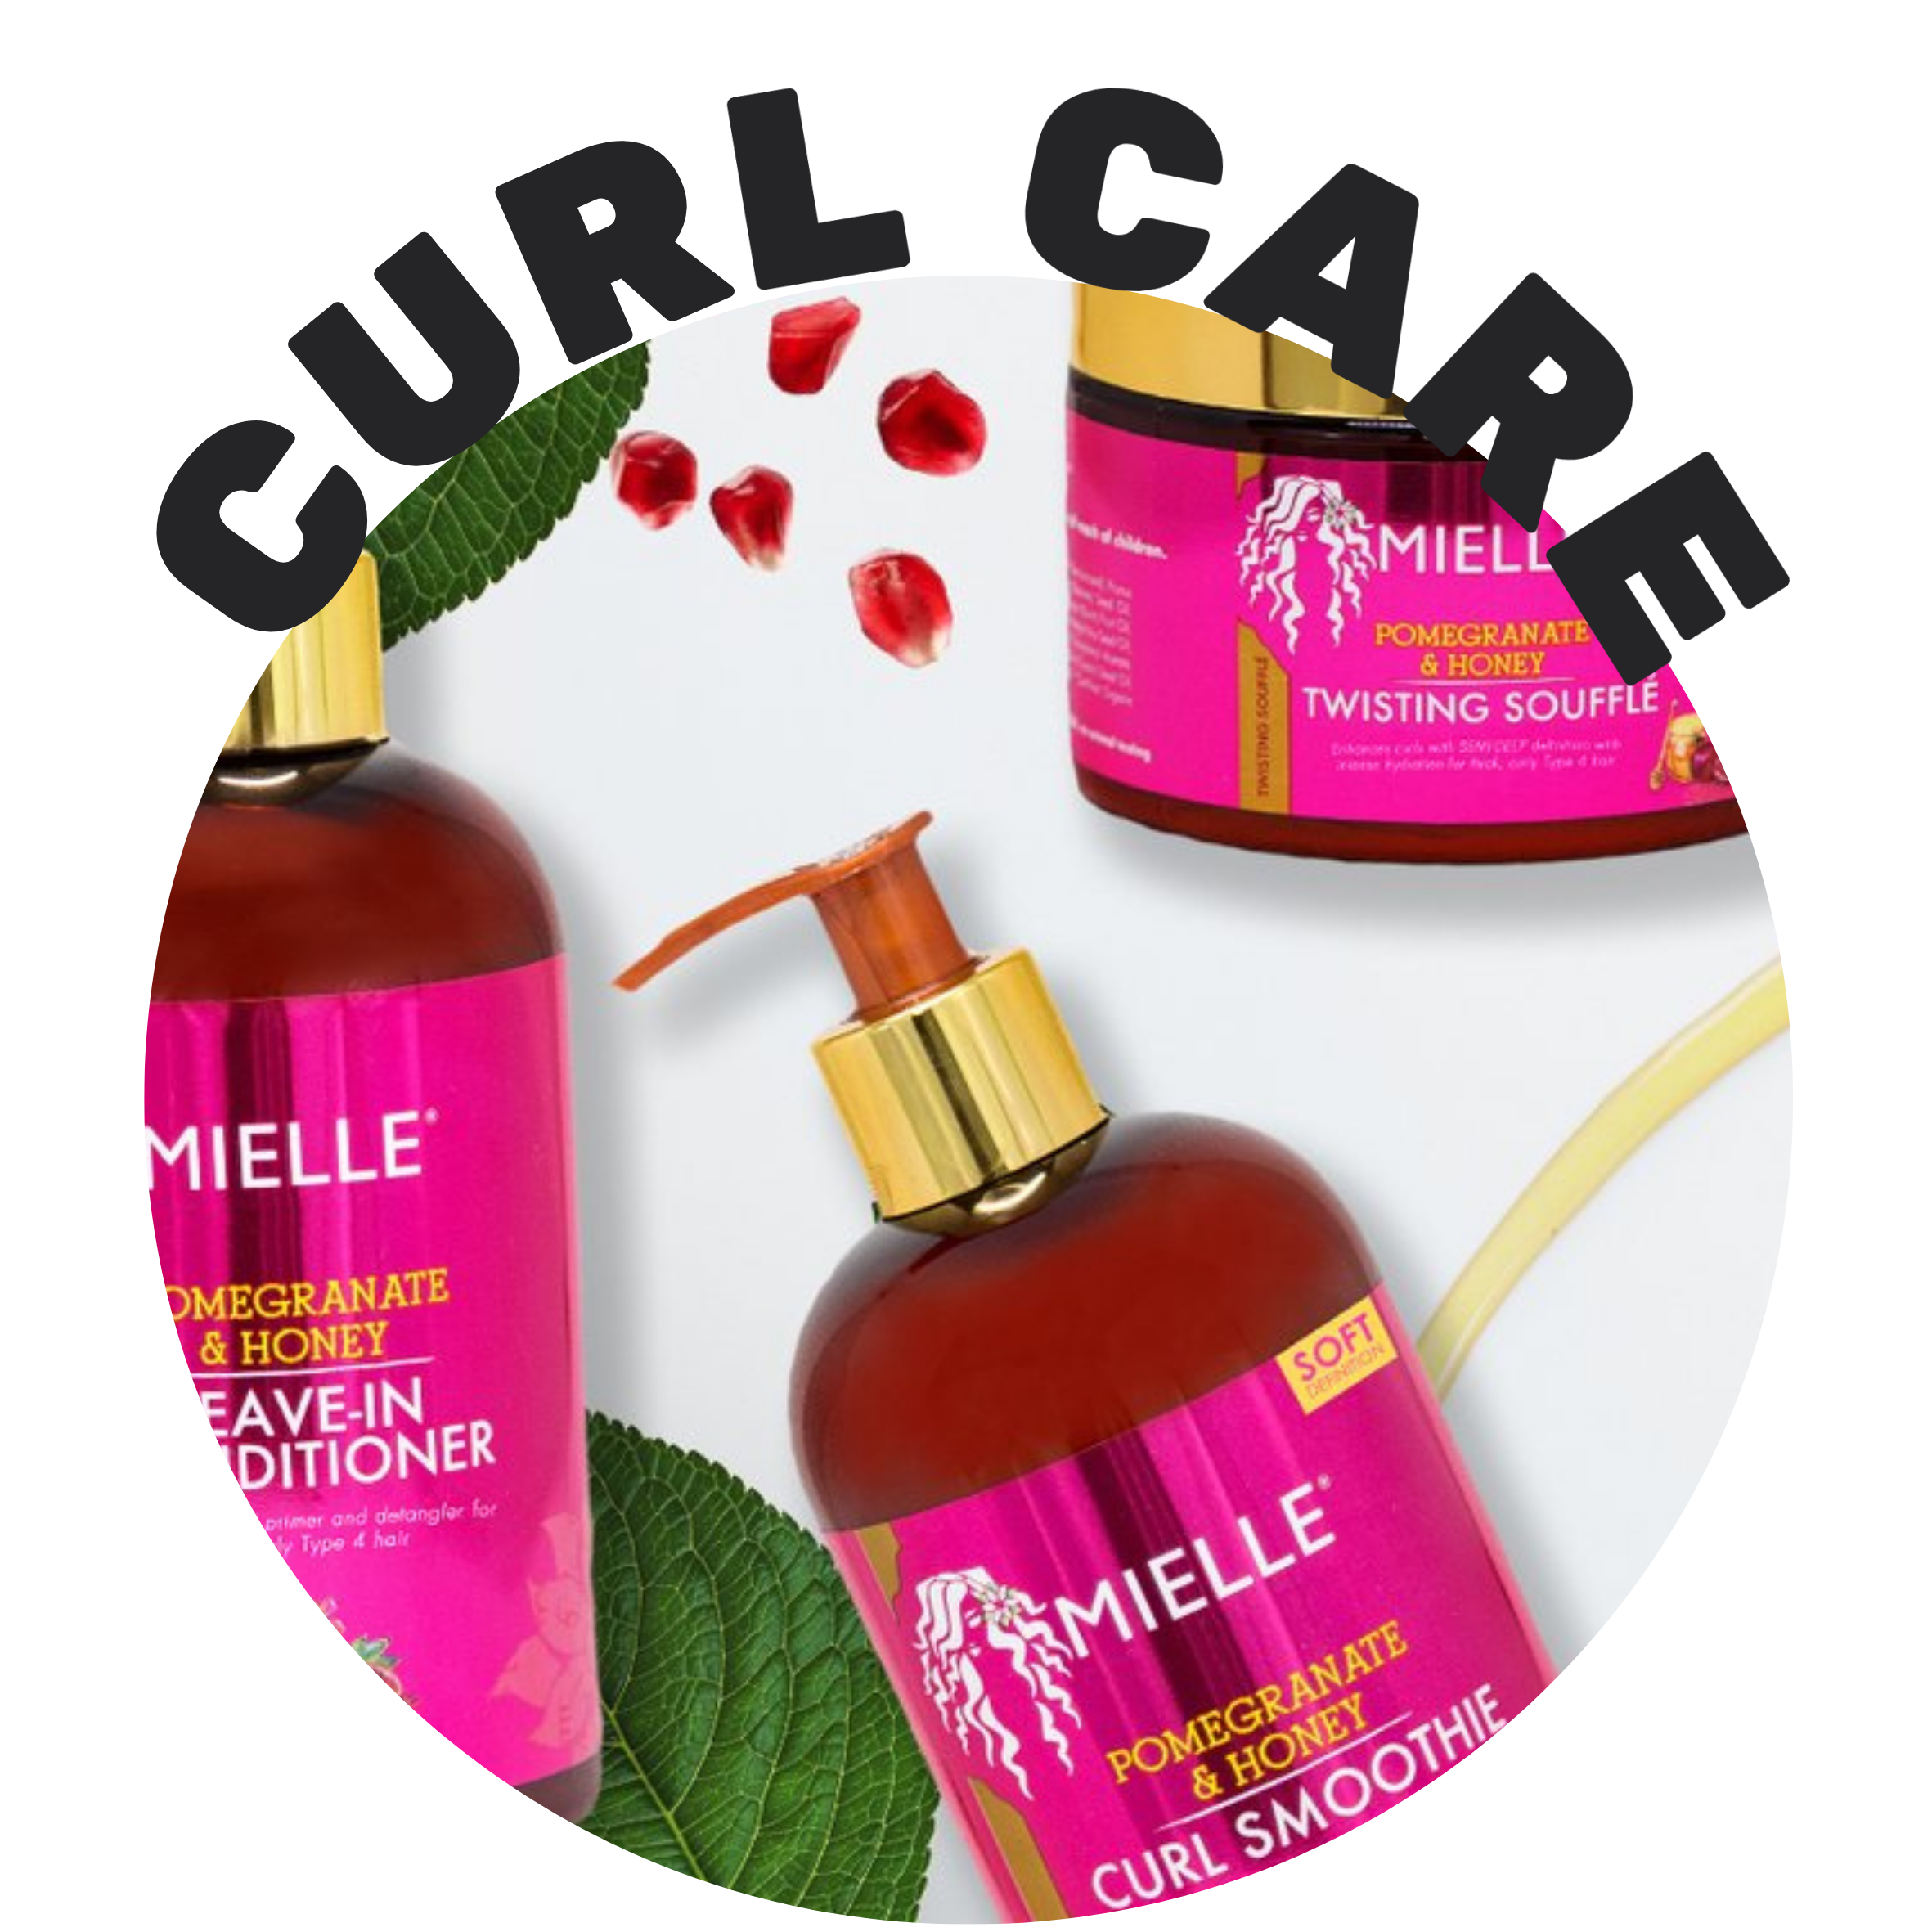 No matter the hair type a collection of curl care products for the whole family